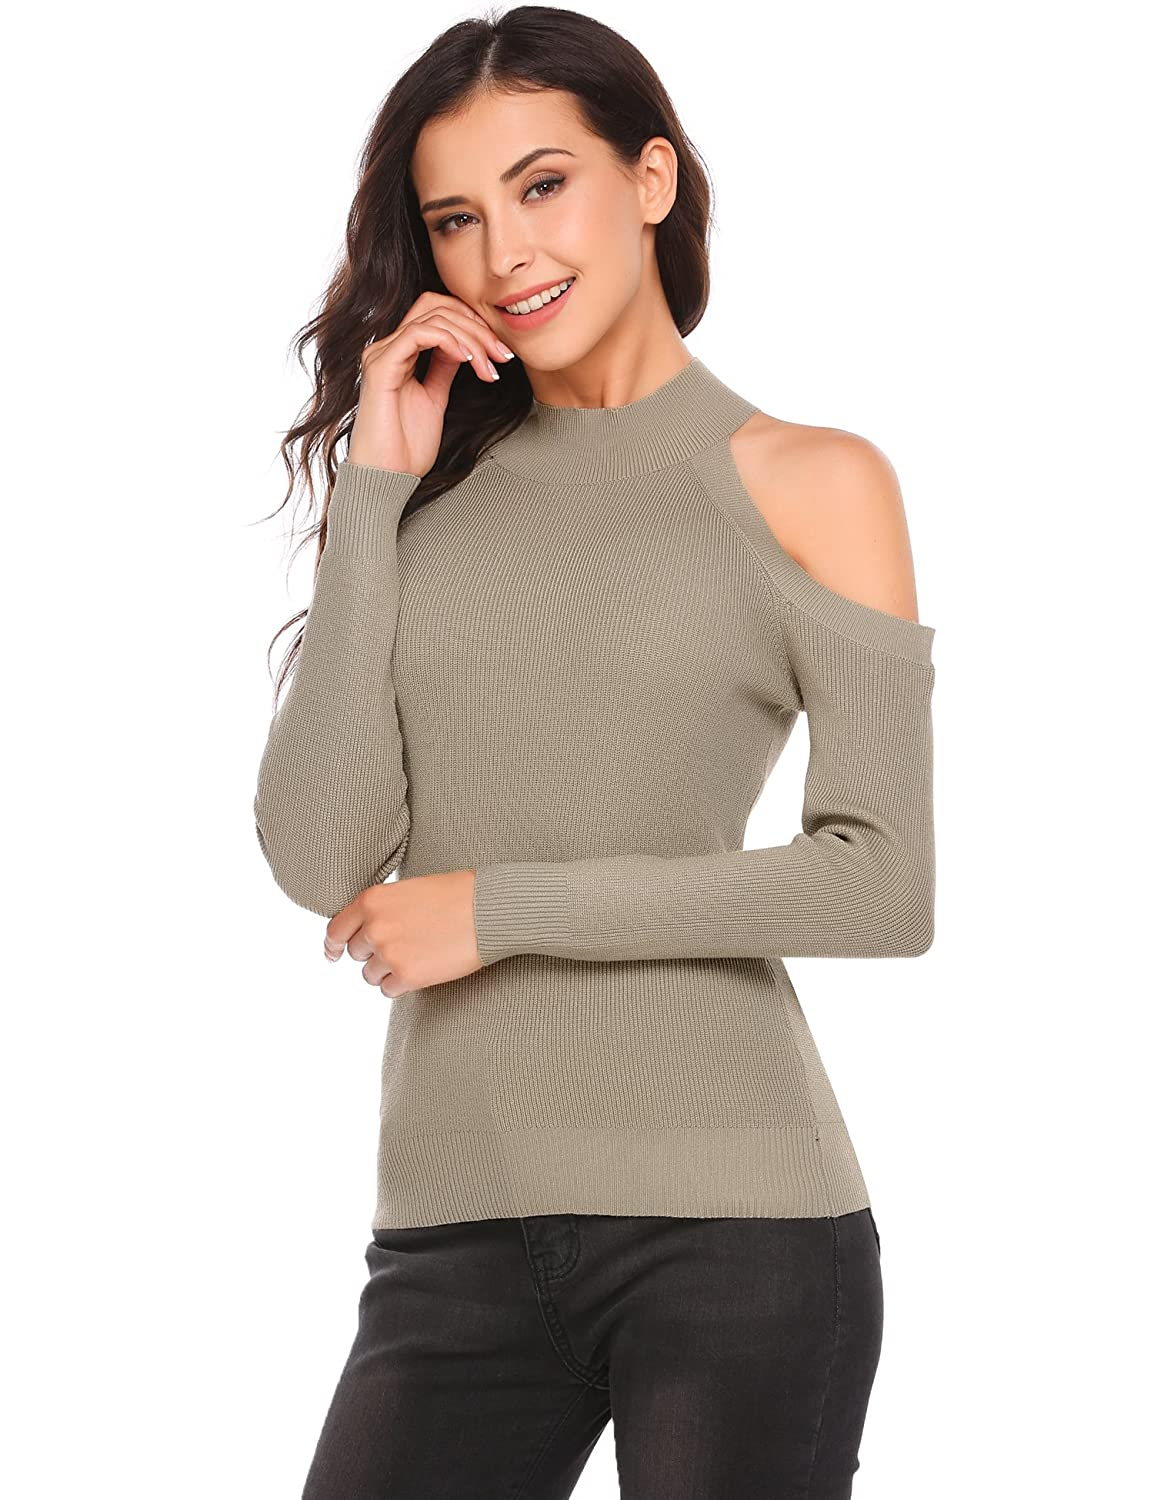 1ee9b1ac9f2c0a Zeagoo Womens Autumn Cold Shoulder High Neck Knitted Tops Pullover Sweater